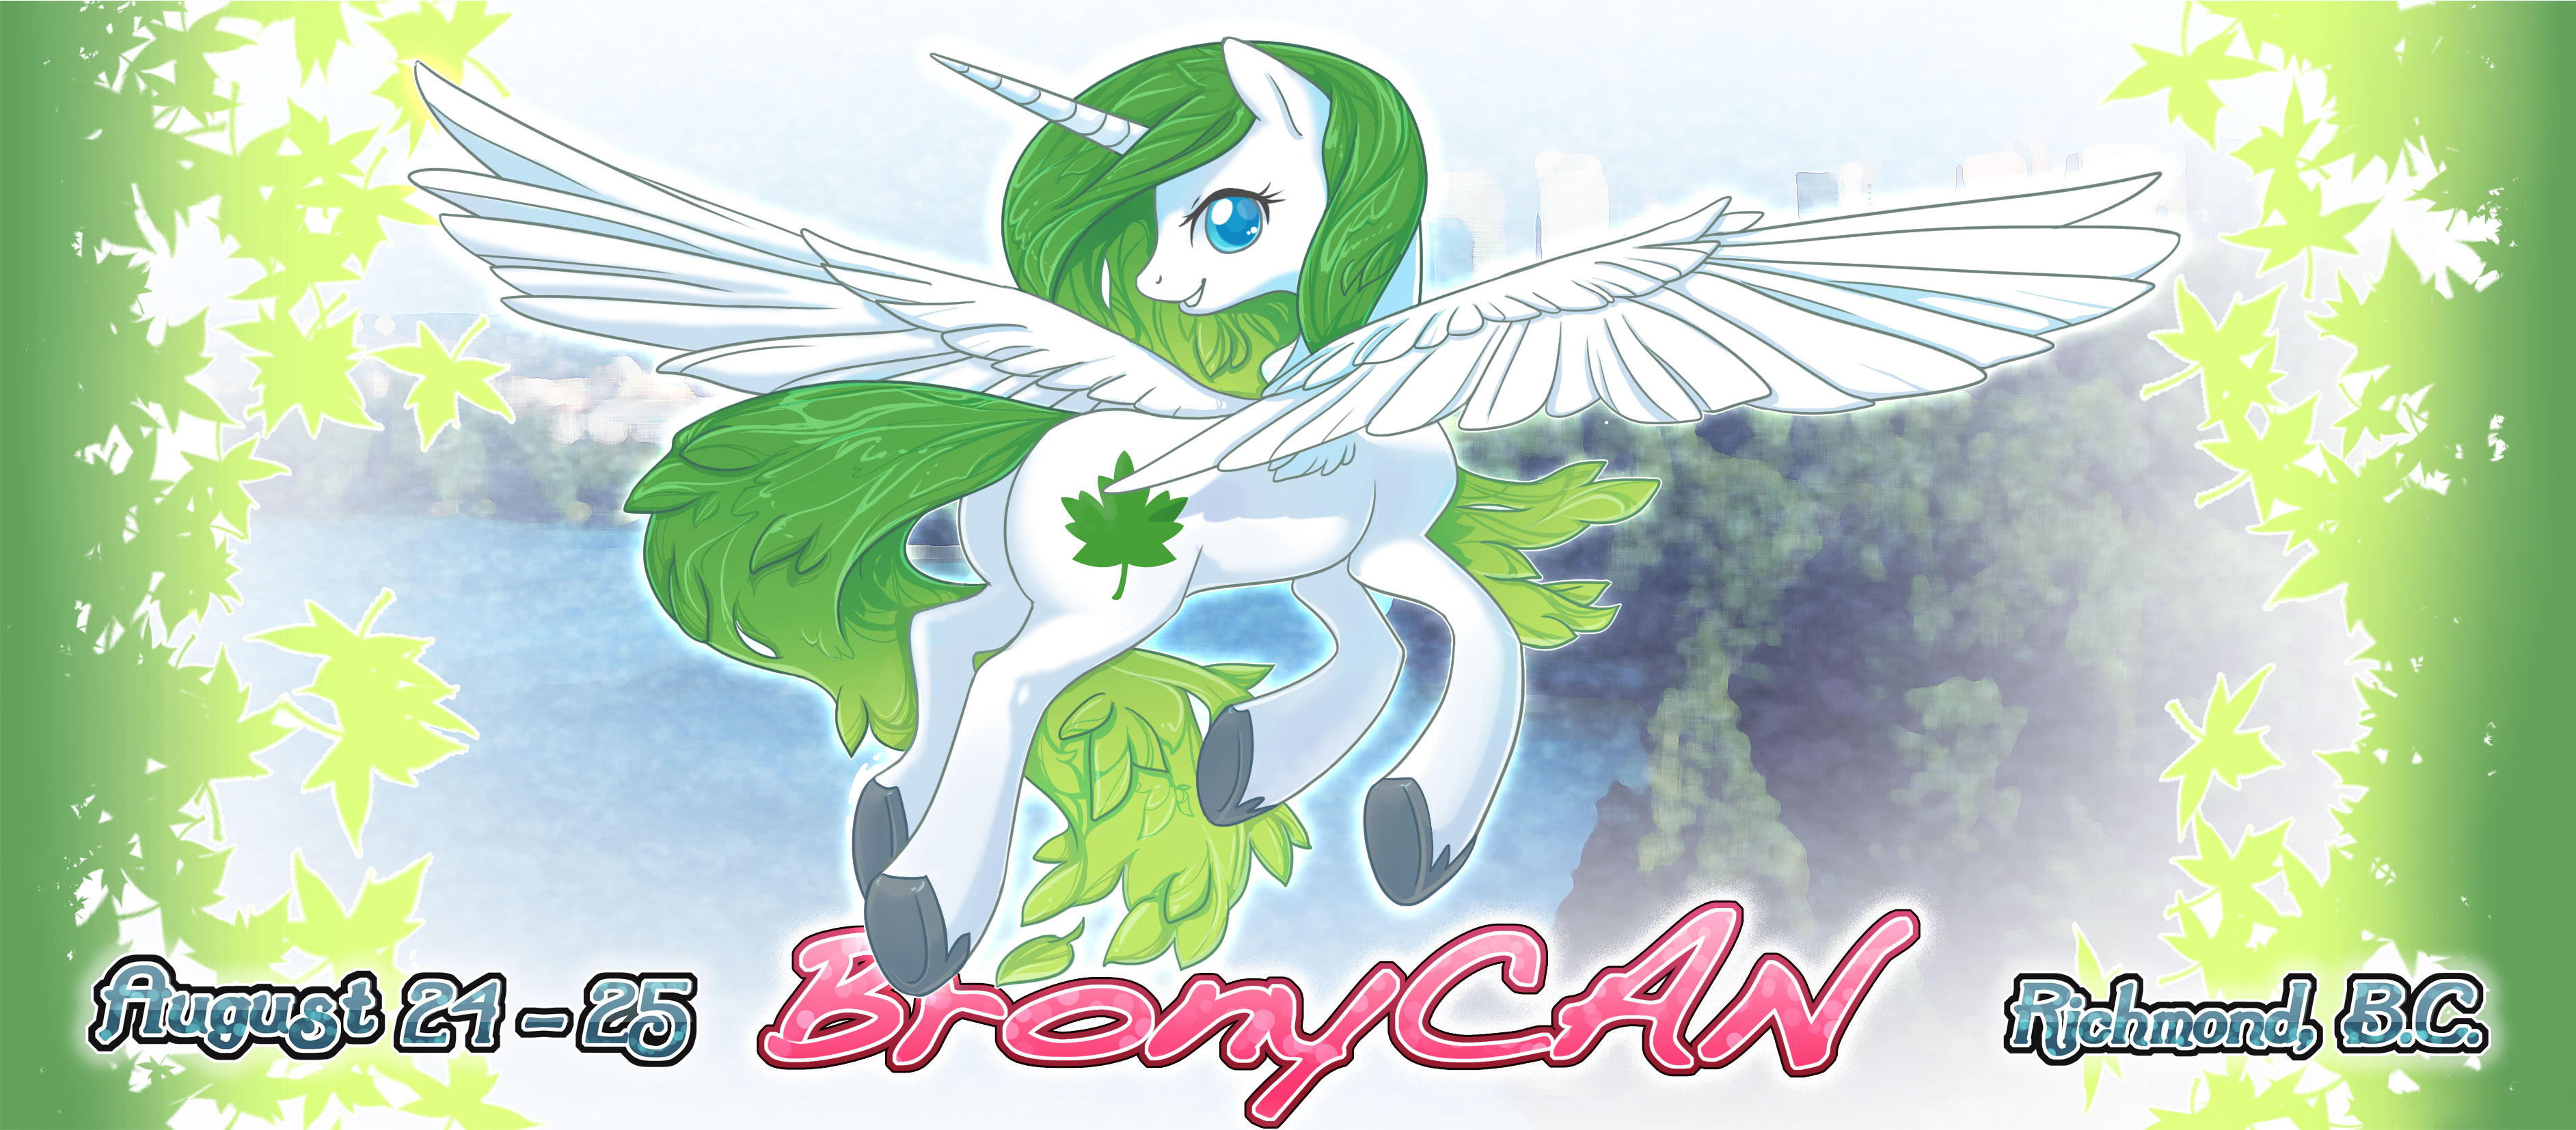 Welcome to BronyCan!